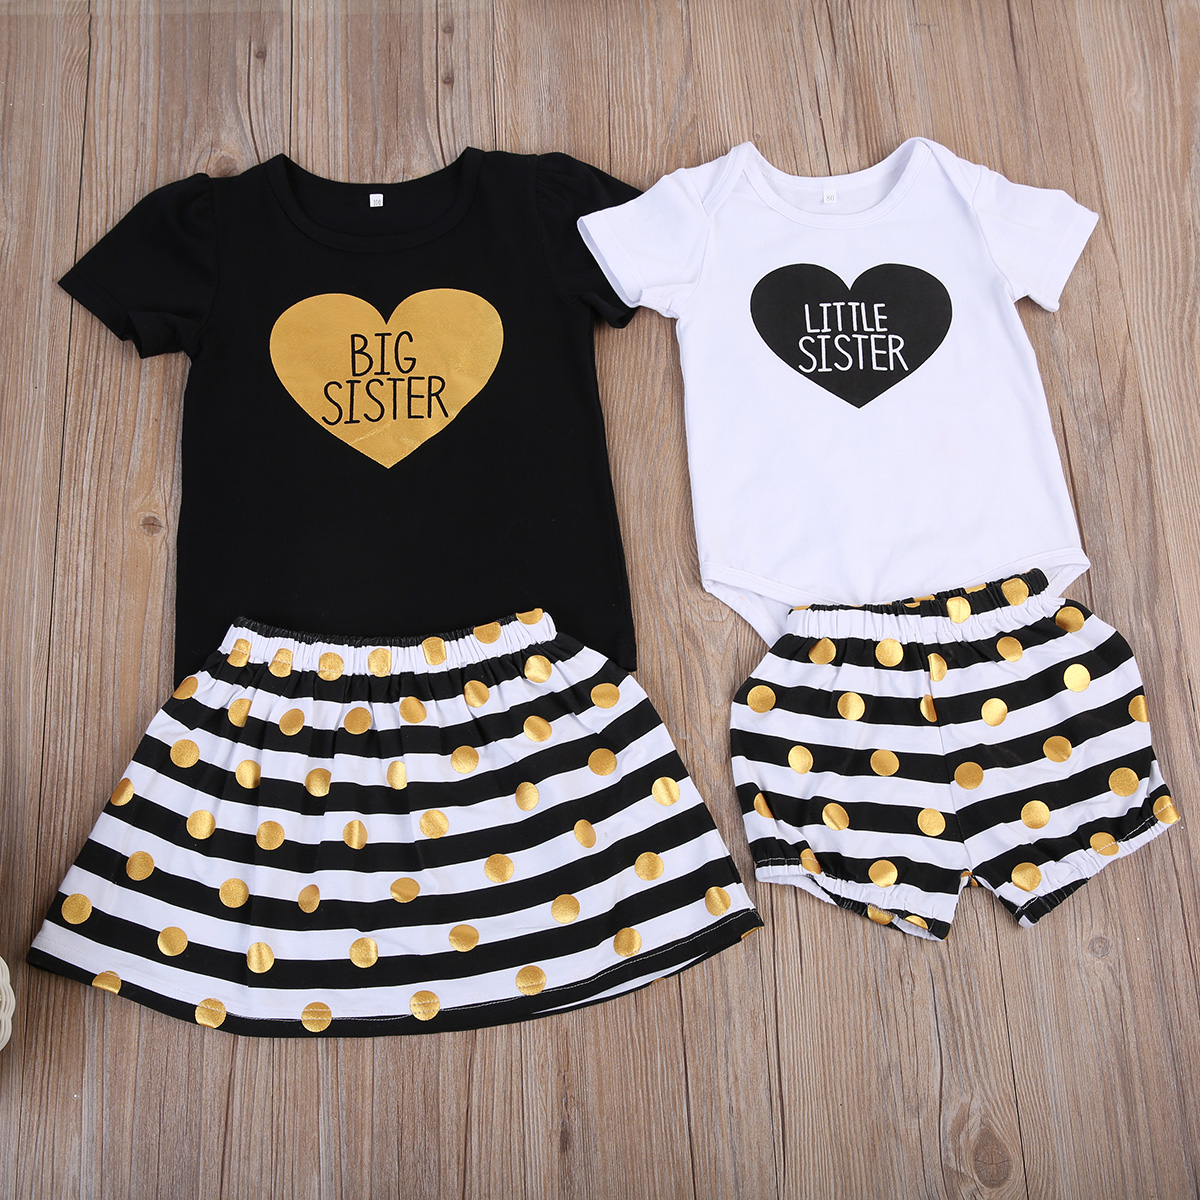 Emmababy Big Little Sister Clothes <font><b>Set</b></font> <font><b>Baby</b></font> Girl Clothes 2pcs/<font><b>Set</b></font> Short Sleeve Heart Print Letter <font><b>Tshirt</b></font>+Dot Skirt/Shorts Outfit image